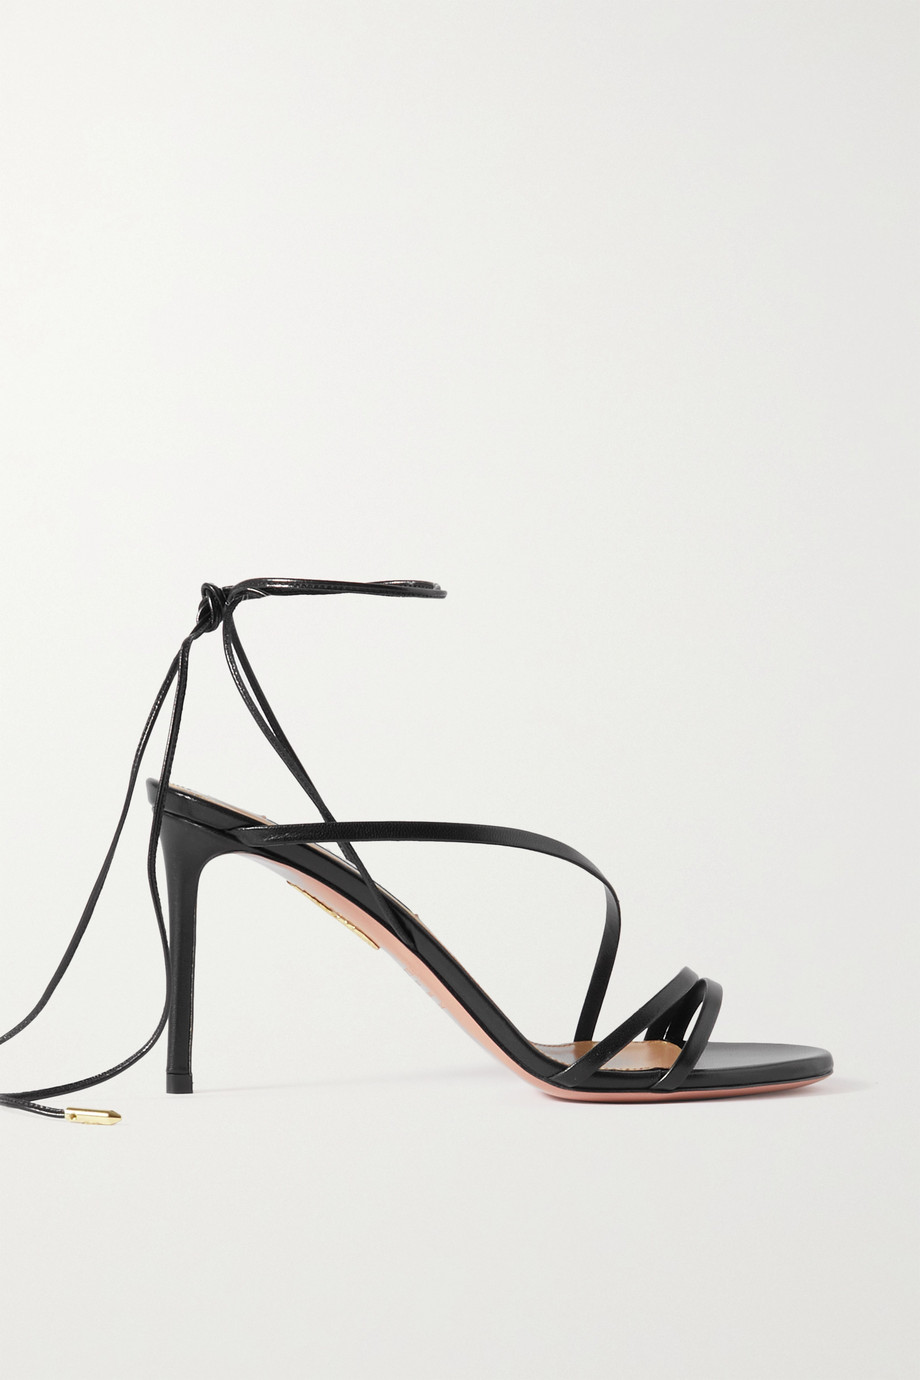 Aquazzura Carnal 85 leather sandals